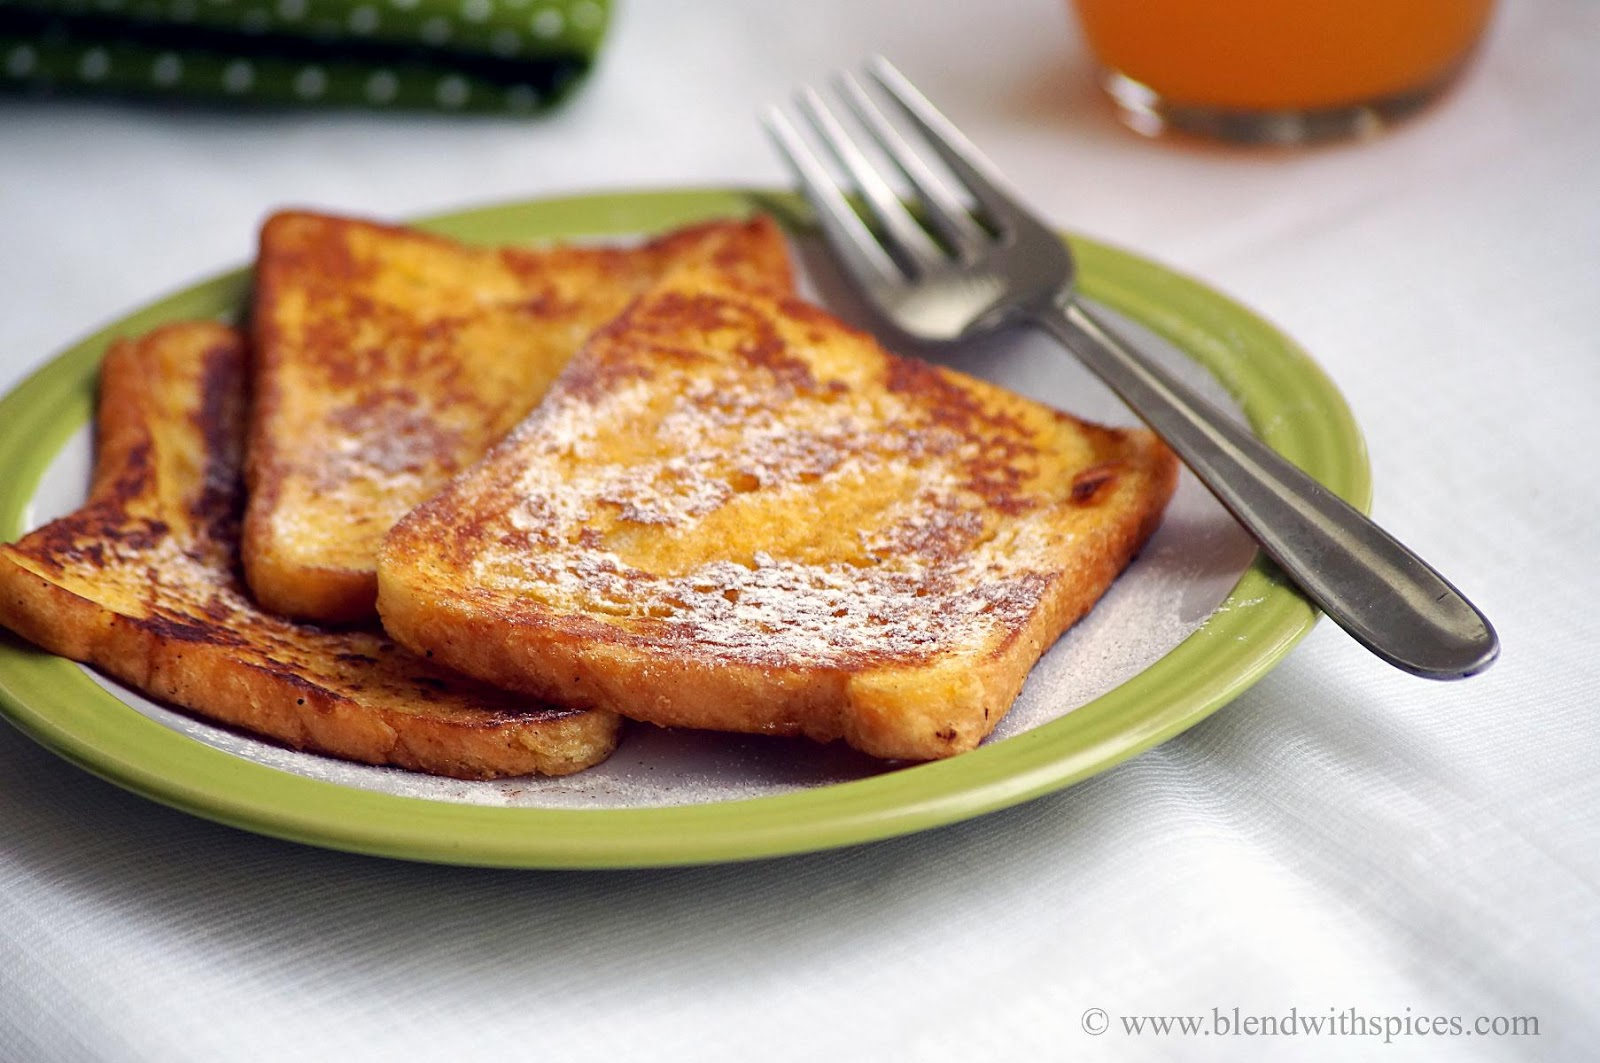 Eggless Cinnamon French Toast Recipe | Easy Bread Recipes - Blend with ...